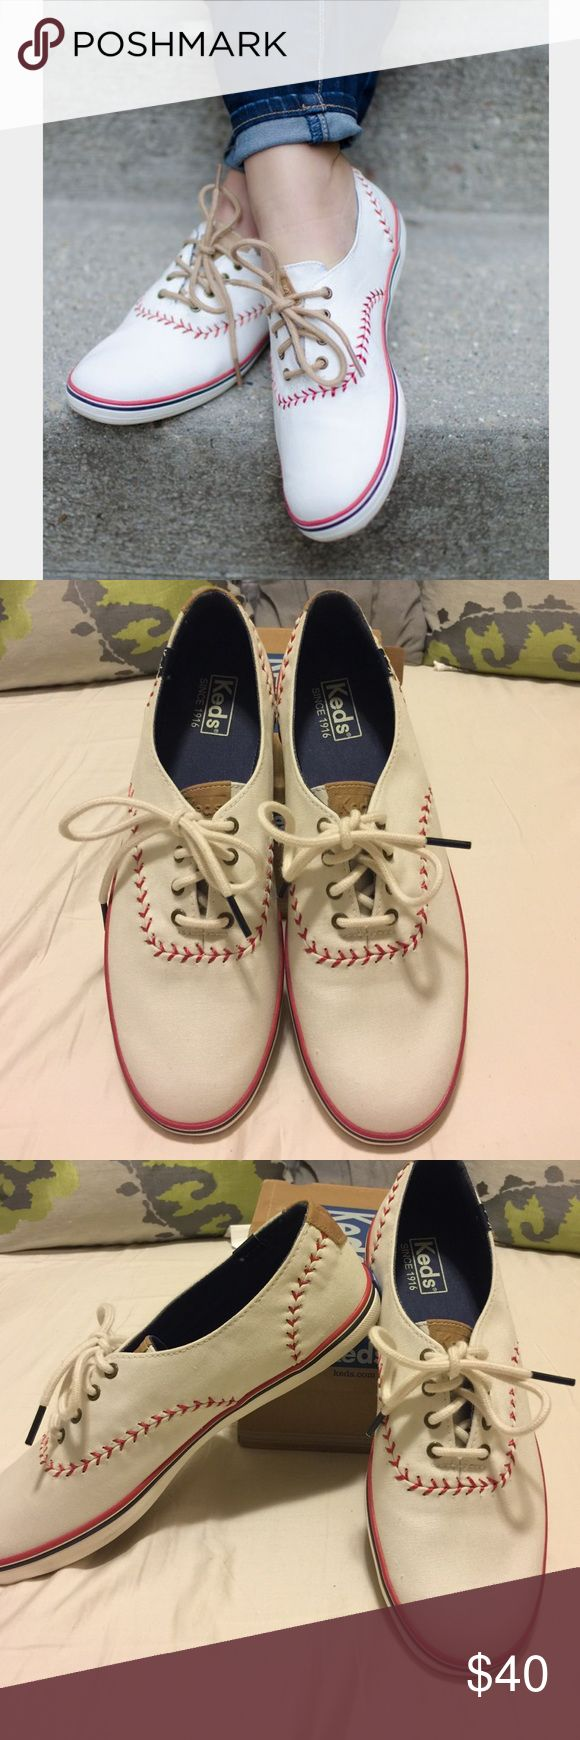 🎉Baseball keds🎉 How adorable are these eye-catching sneakers featuring a  baseball inspired pattern!!! Whether you're wearing these to the Little League baseball game or a MLB  game you are sure to be the center of attention. 🎉Brand New🎉size 9 Keds Shoes Sneakers